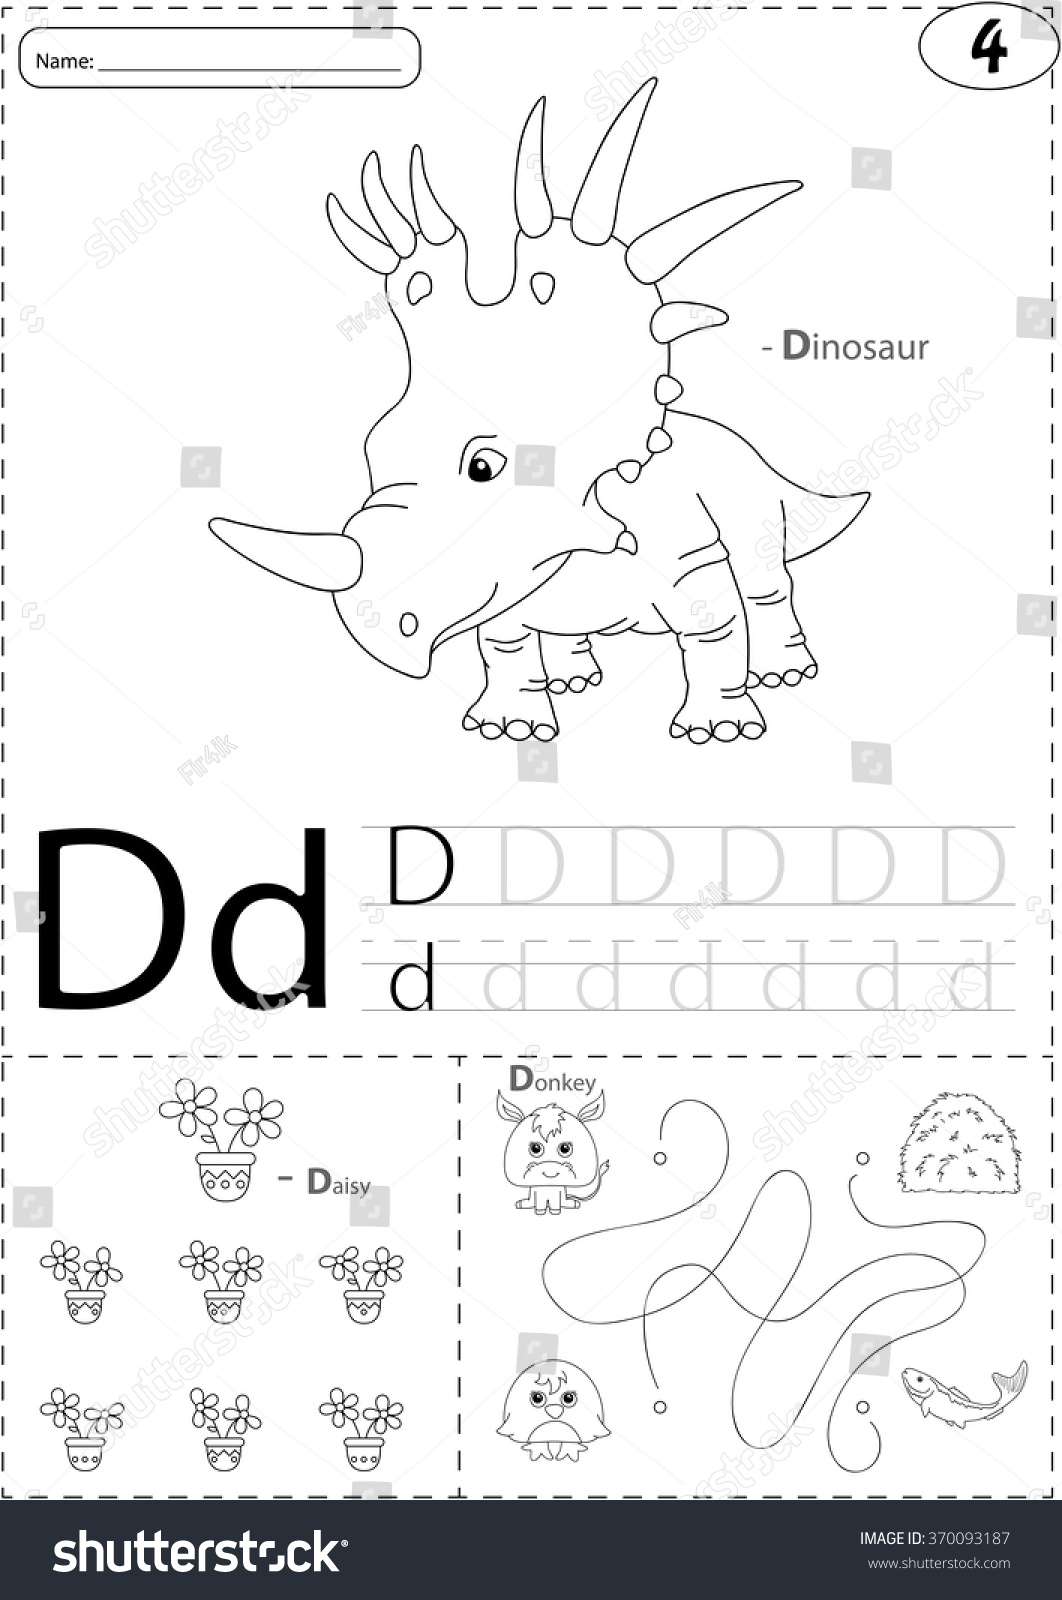 Dinosaurs Worksheet For Kindergarten